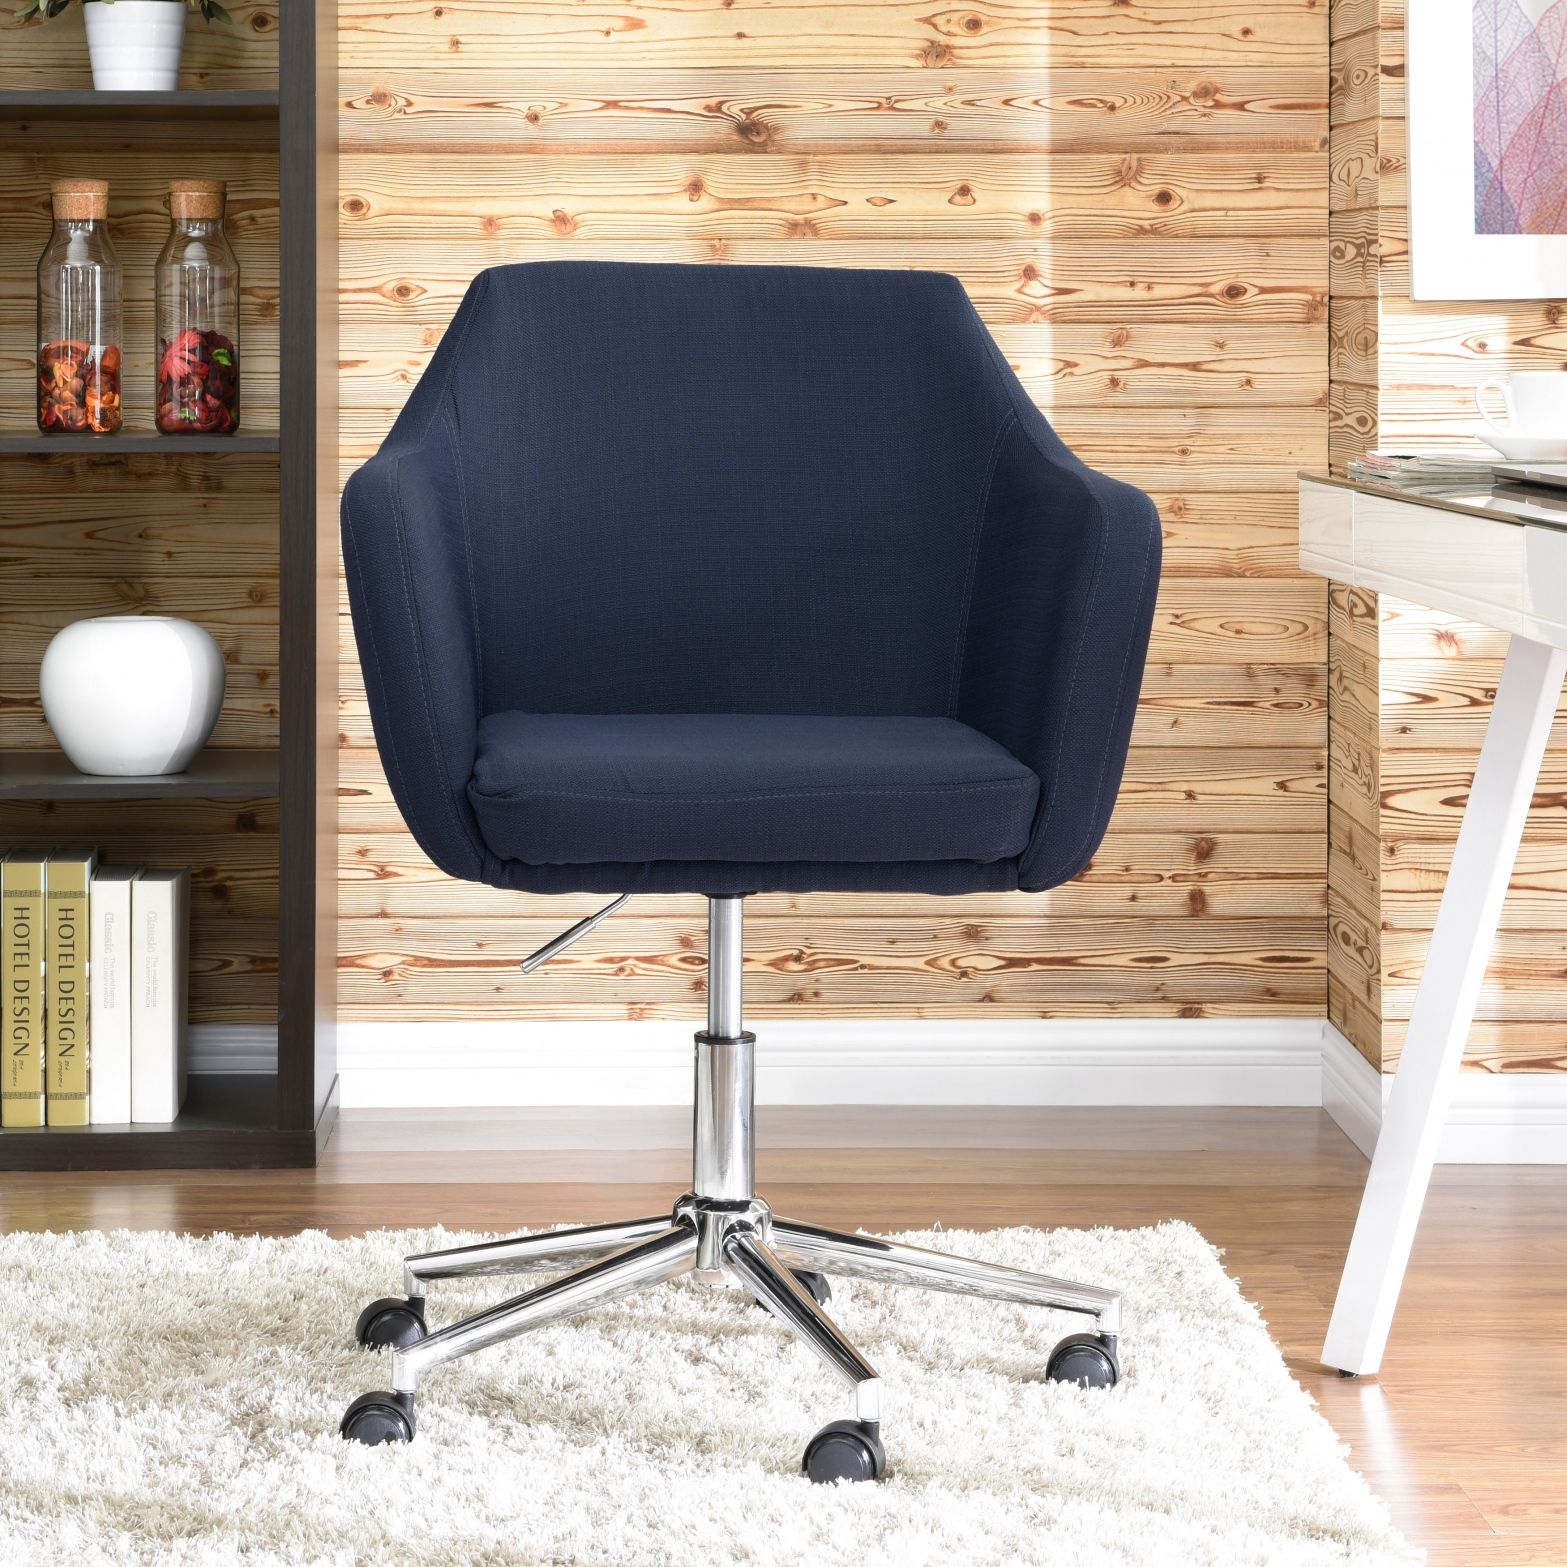 Exceptionnel 55+ Flame Retardant Free Office Chair   Contemporary Home Office Furniture  Check More At Http